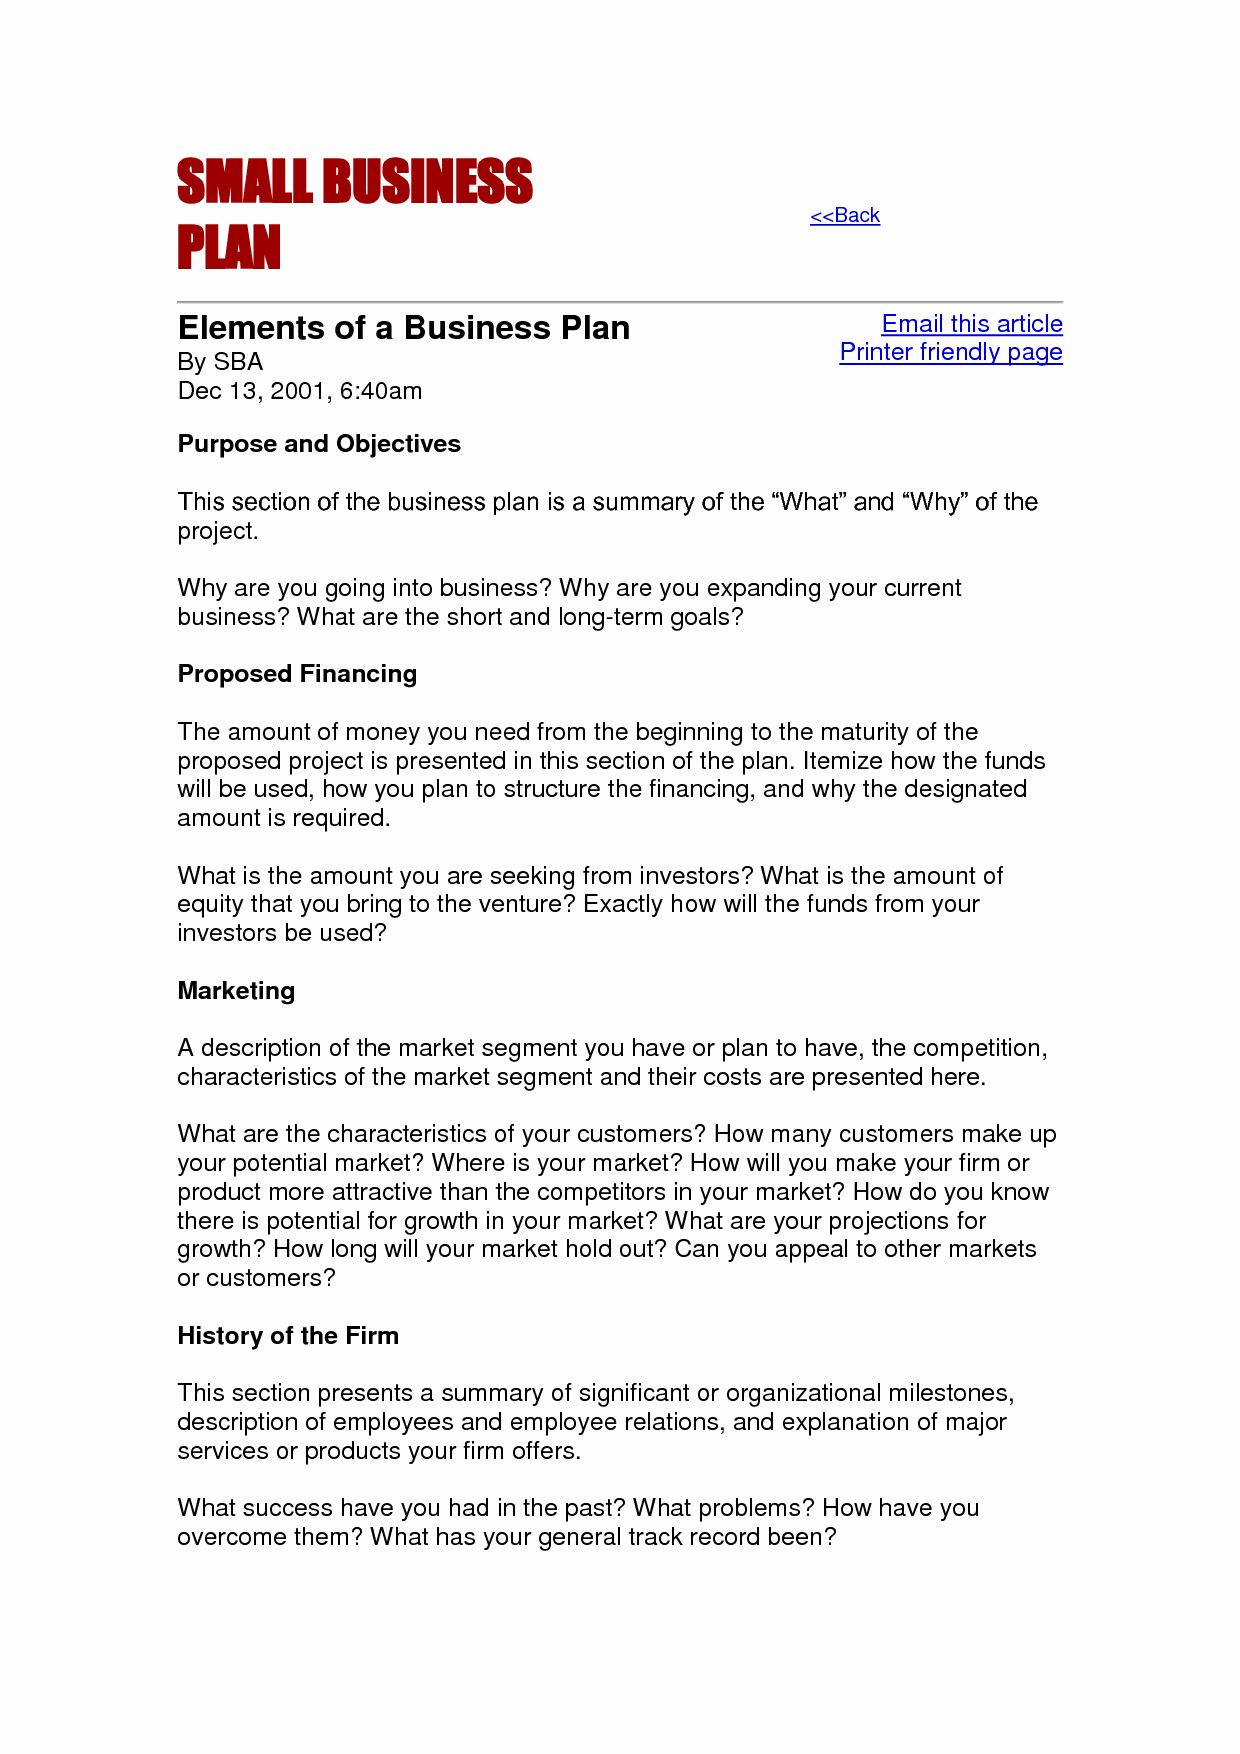 Business Proposal format Template New Pin On Small Business Resources